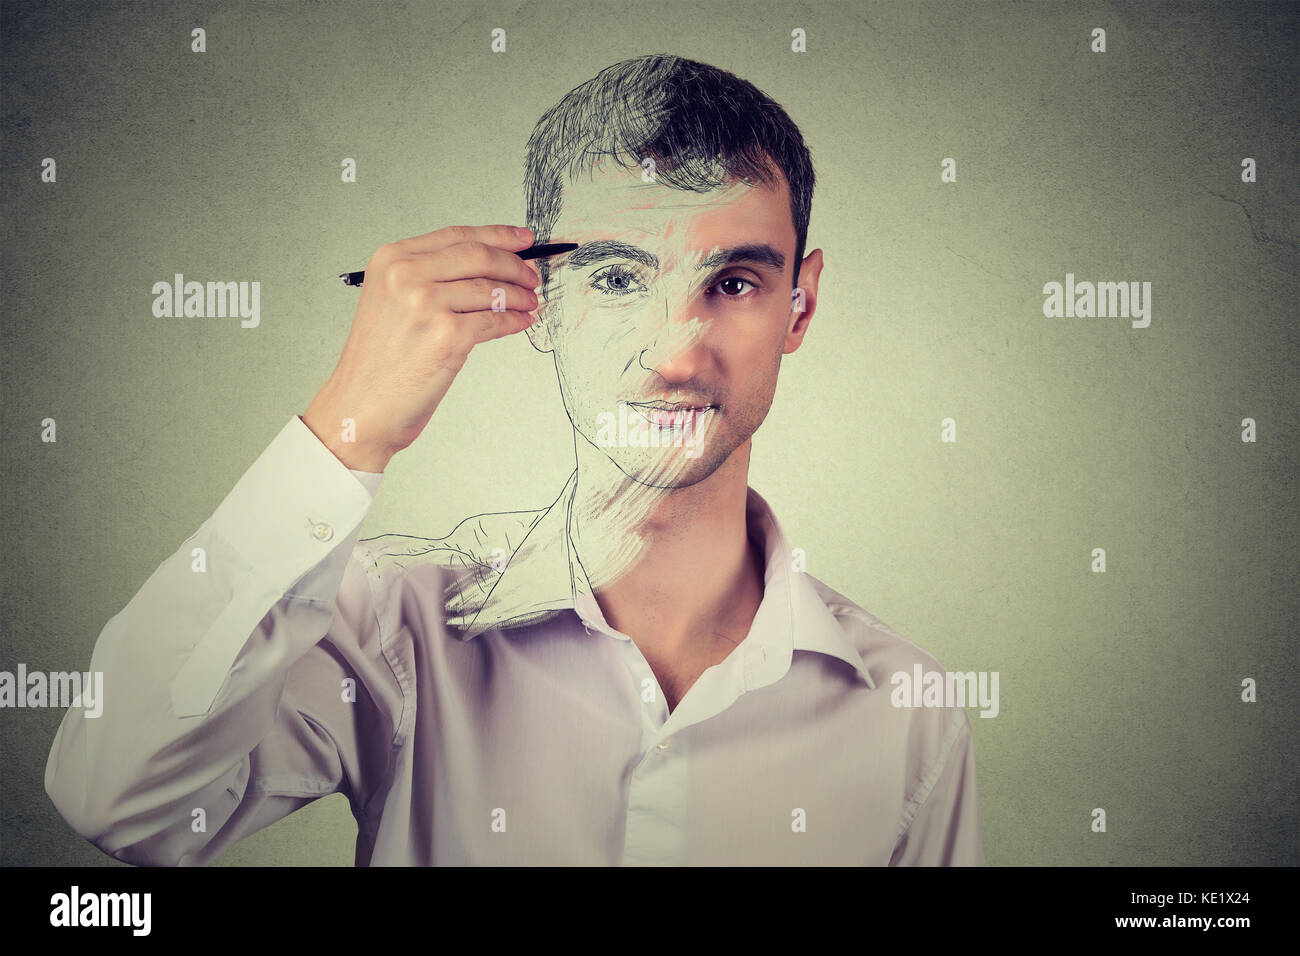 Young man drawing self portrait face, hiding true emotion isolated on grey wall background. Private life, identity - Stock Image